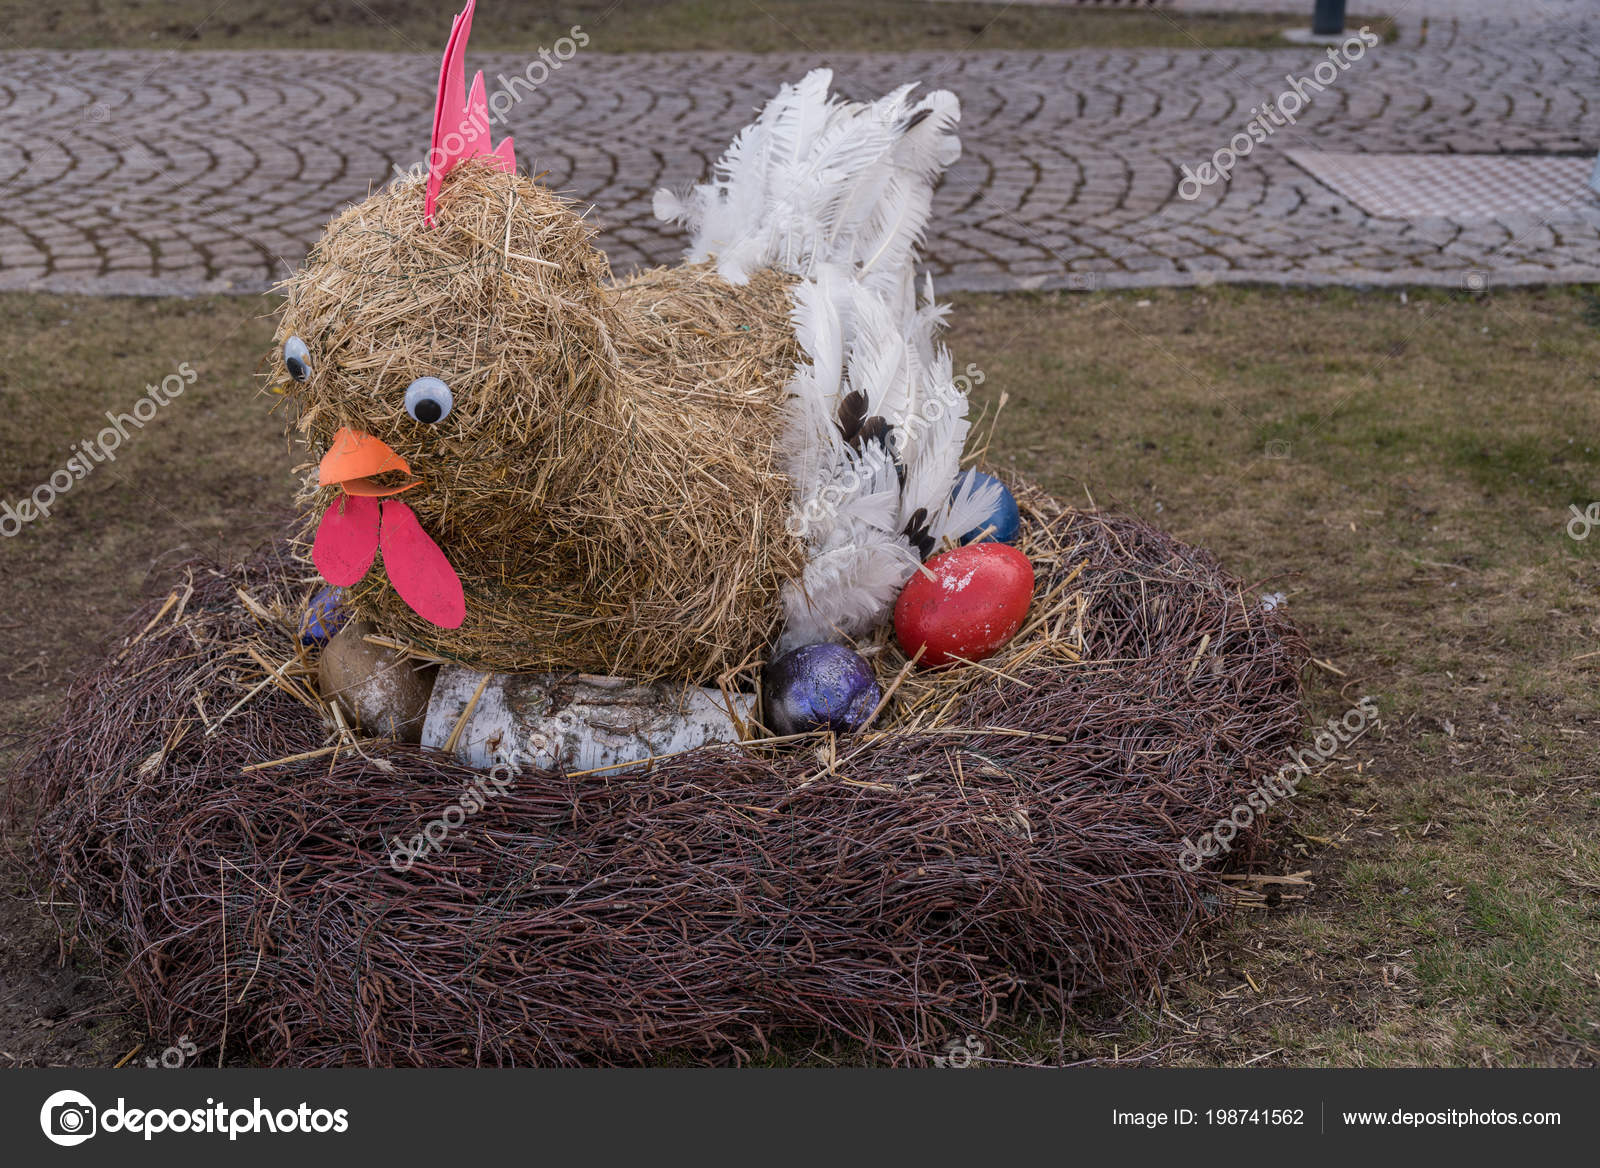 Straw Chick Hatches Colorful Easter Eggs Nest Decorative Easter